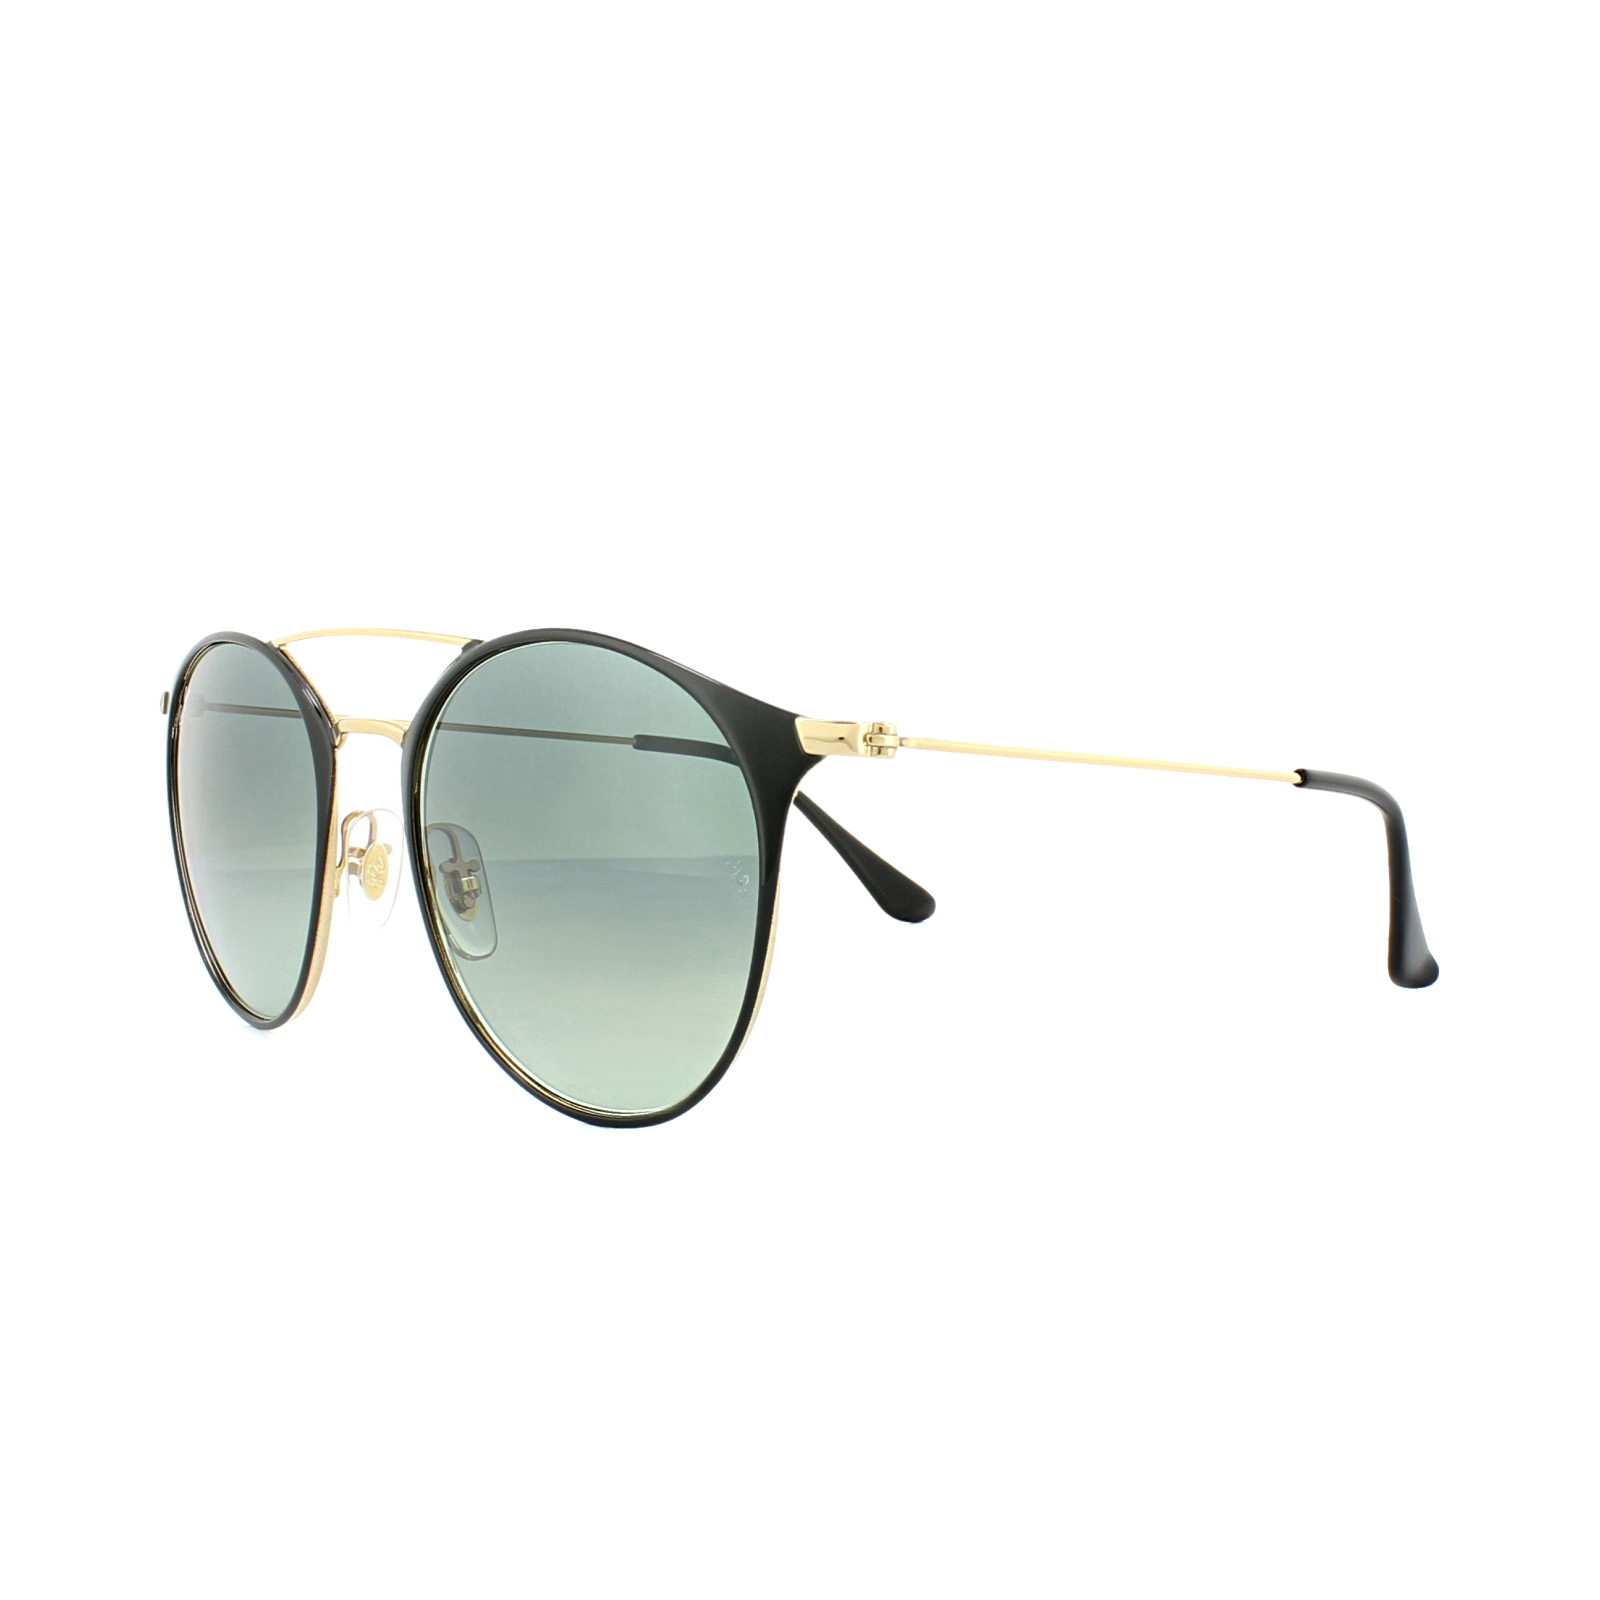 604d005cf9660 Sentinel Ray-Ban Sunglasses 3546 187 71 Black Gold Grey Gradient